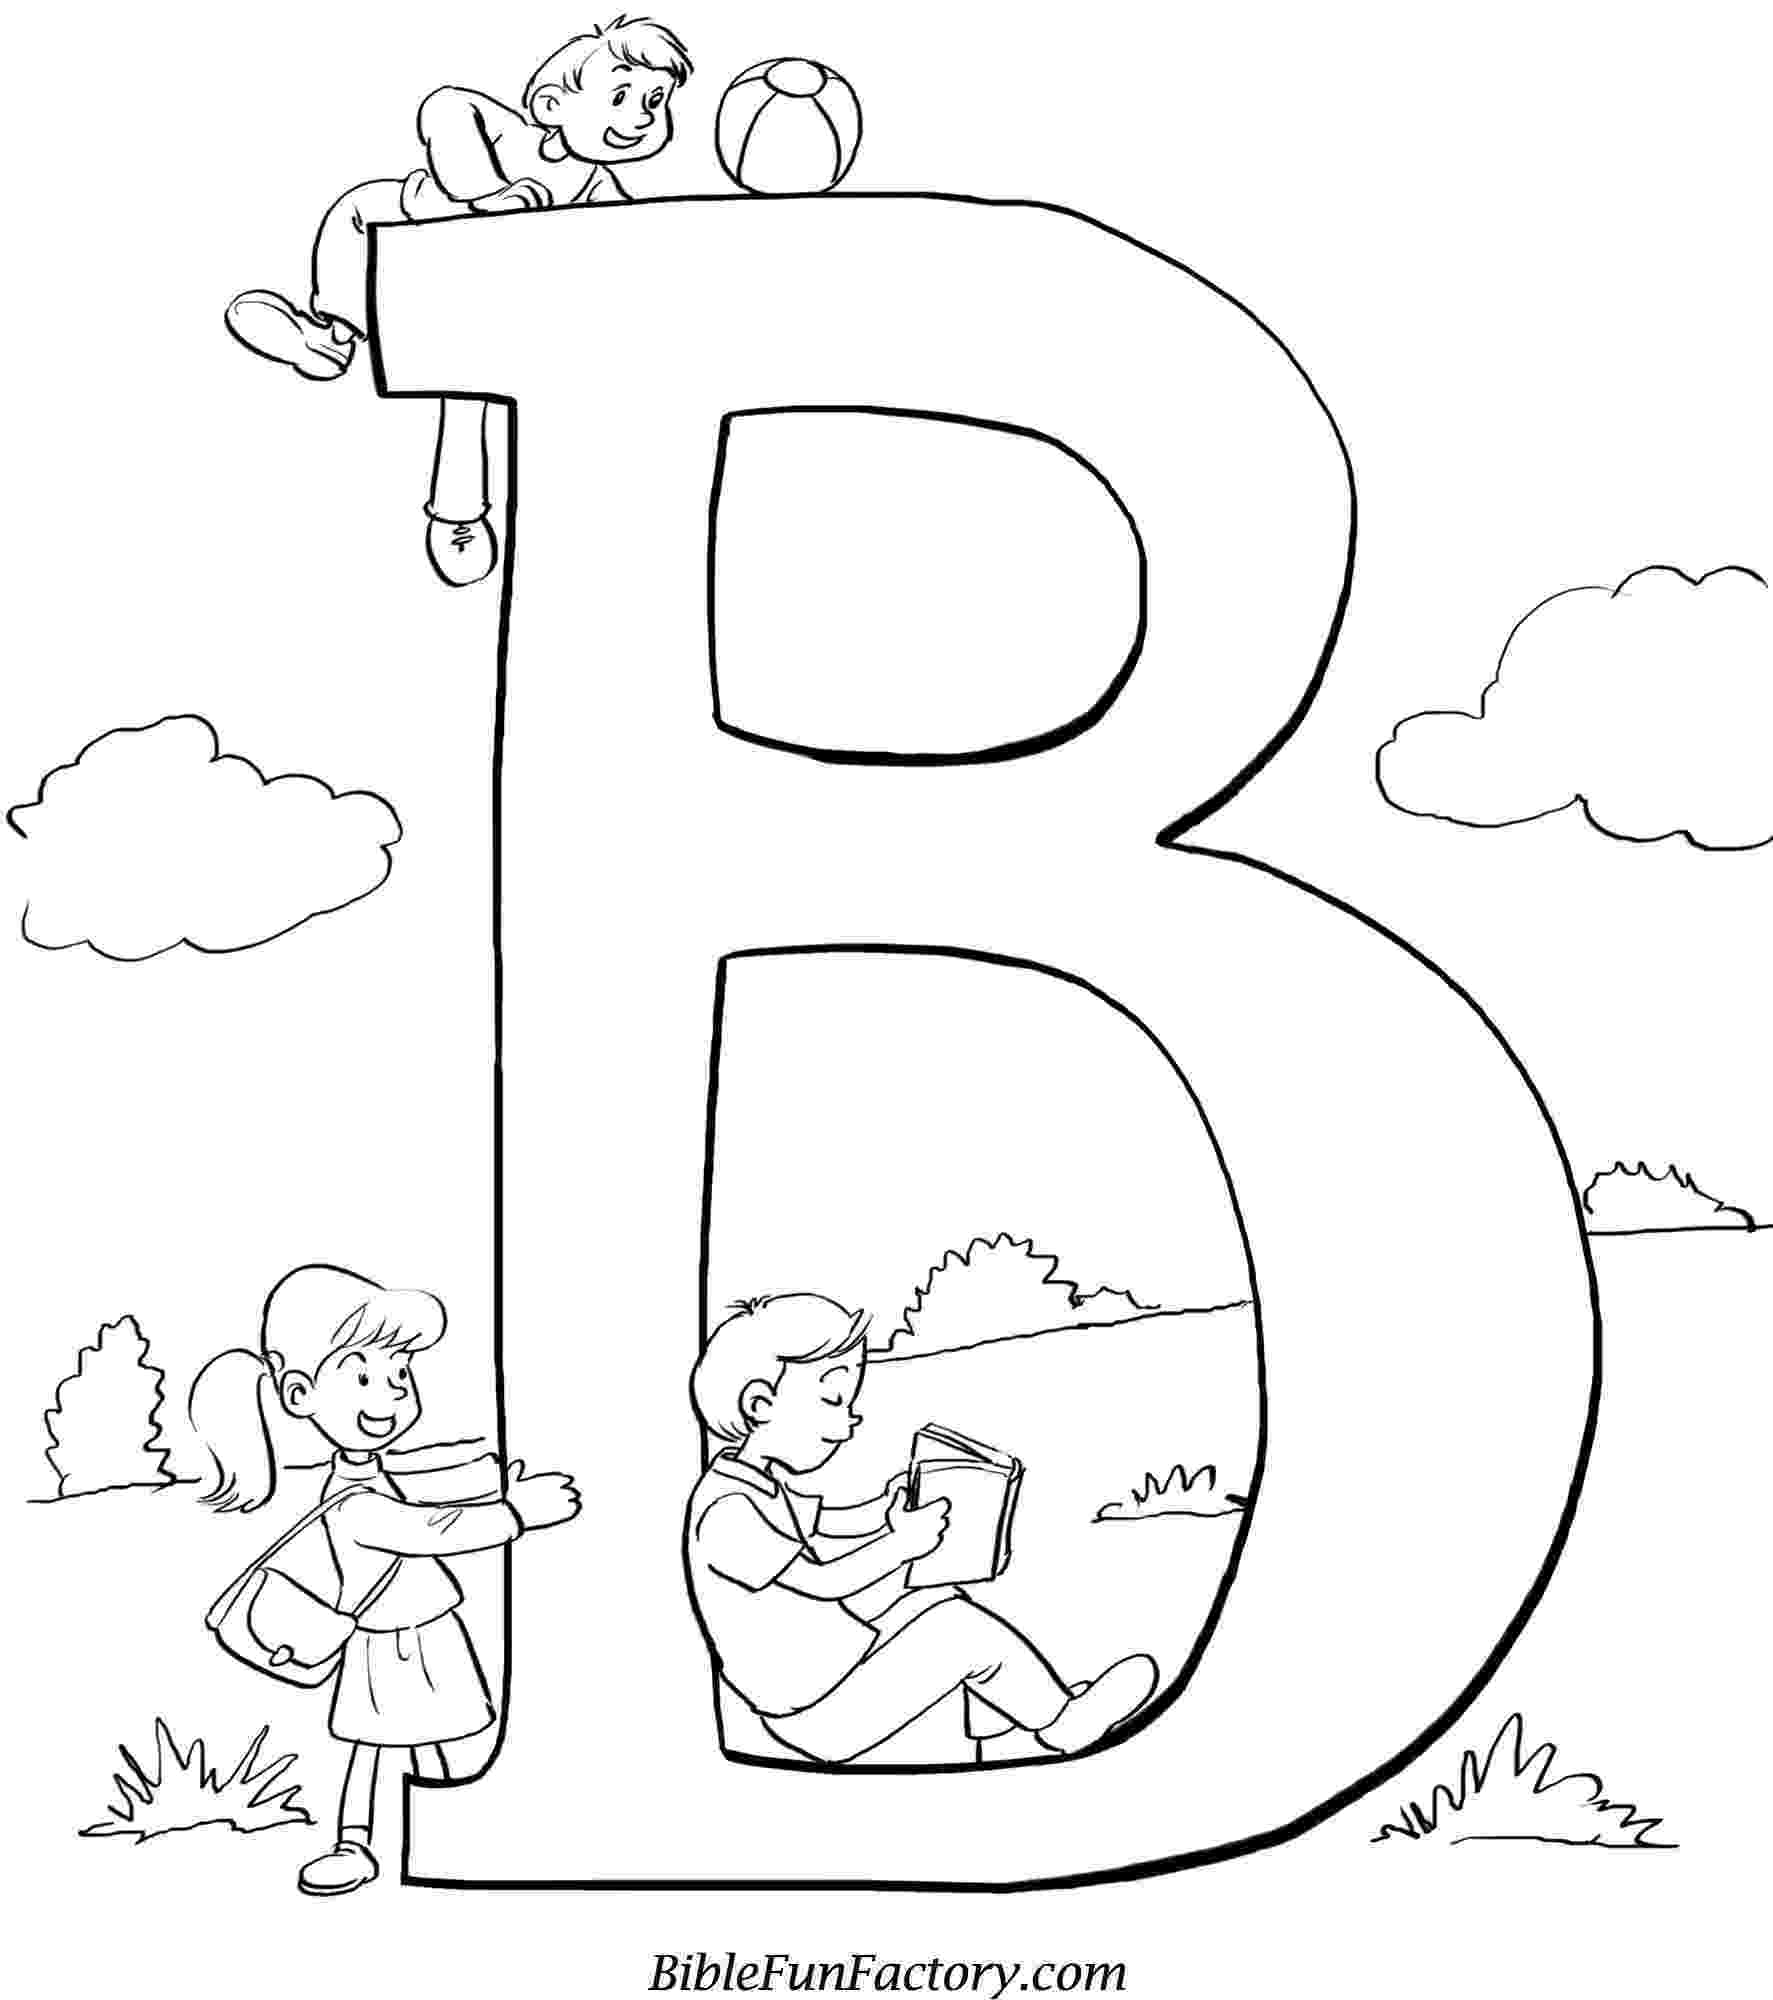 preschool bible coloring pages jesus tells about a good samaritan teaching ccd preschool bible pages coloring